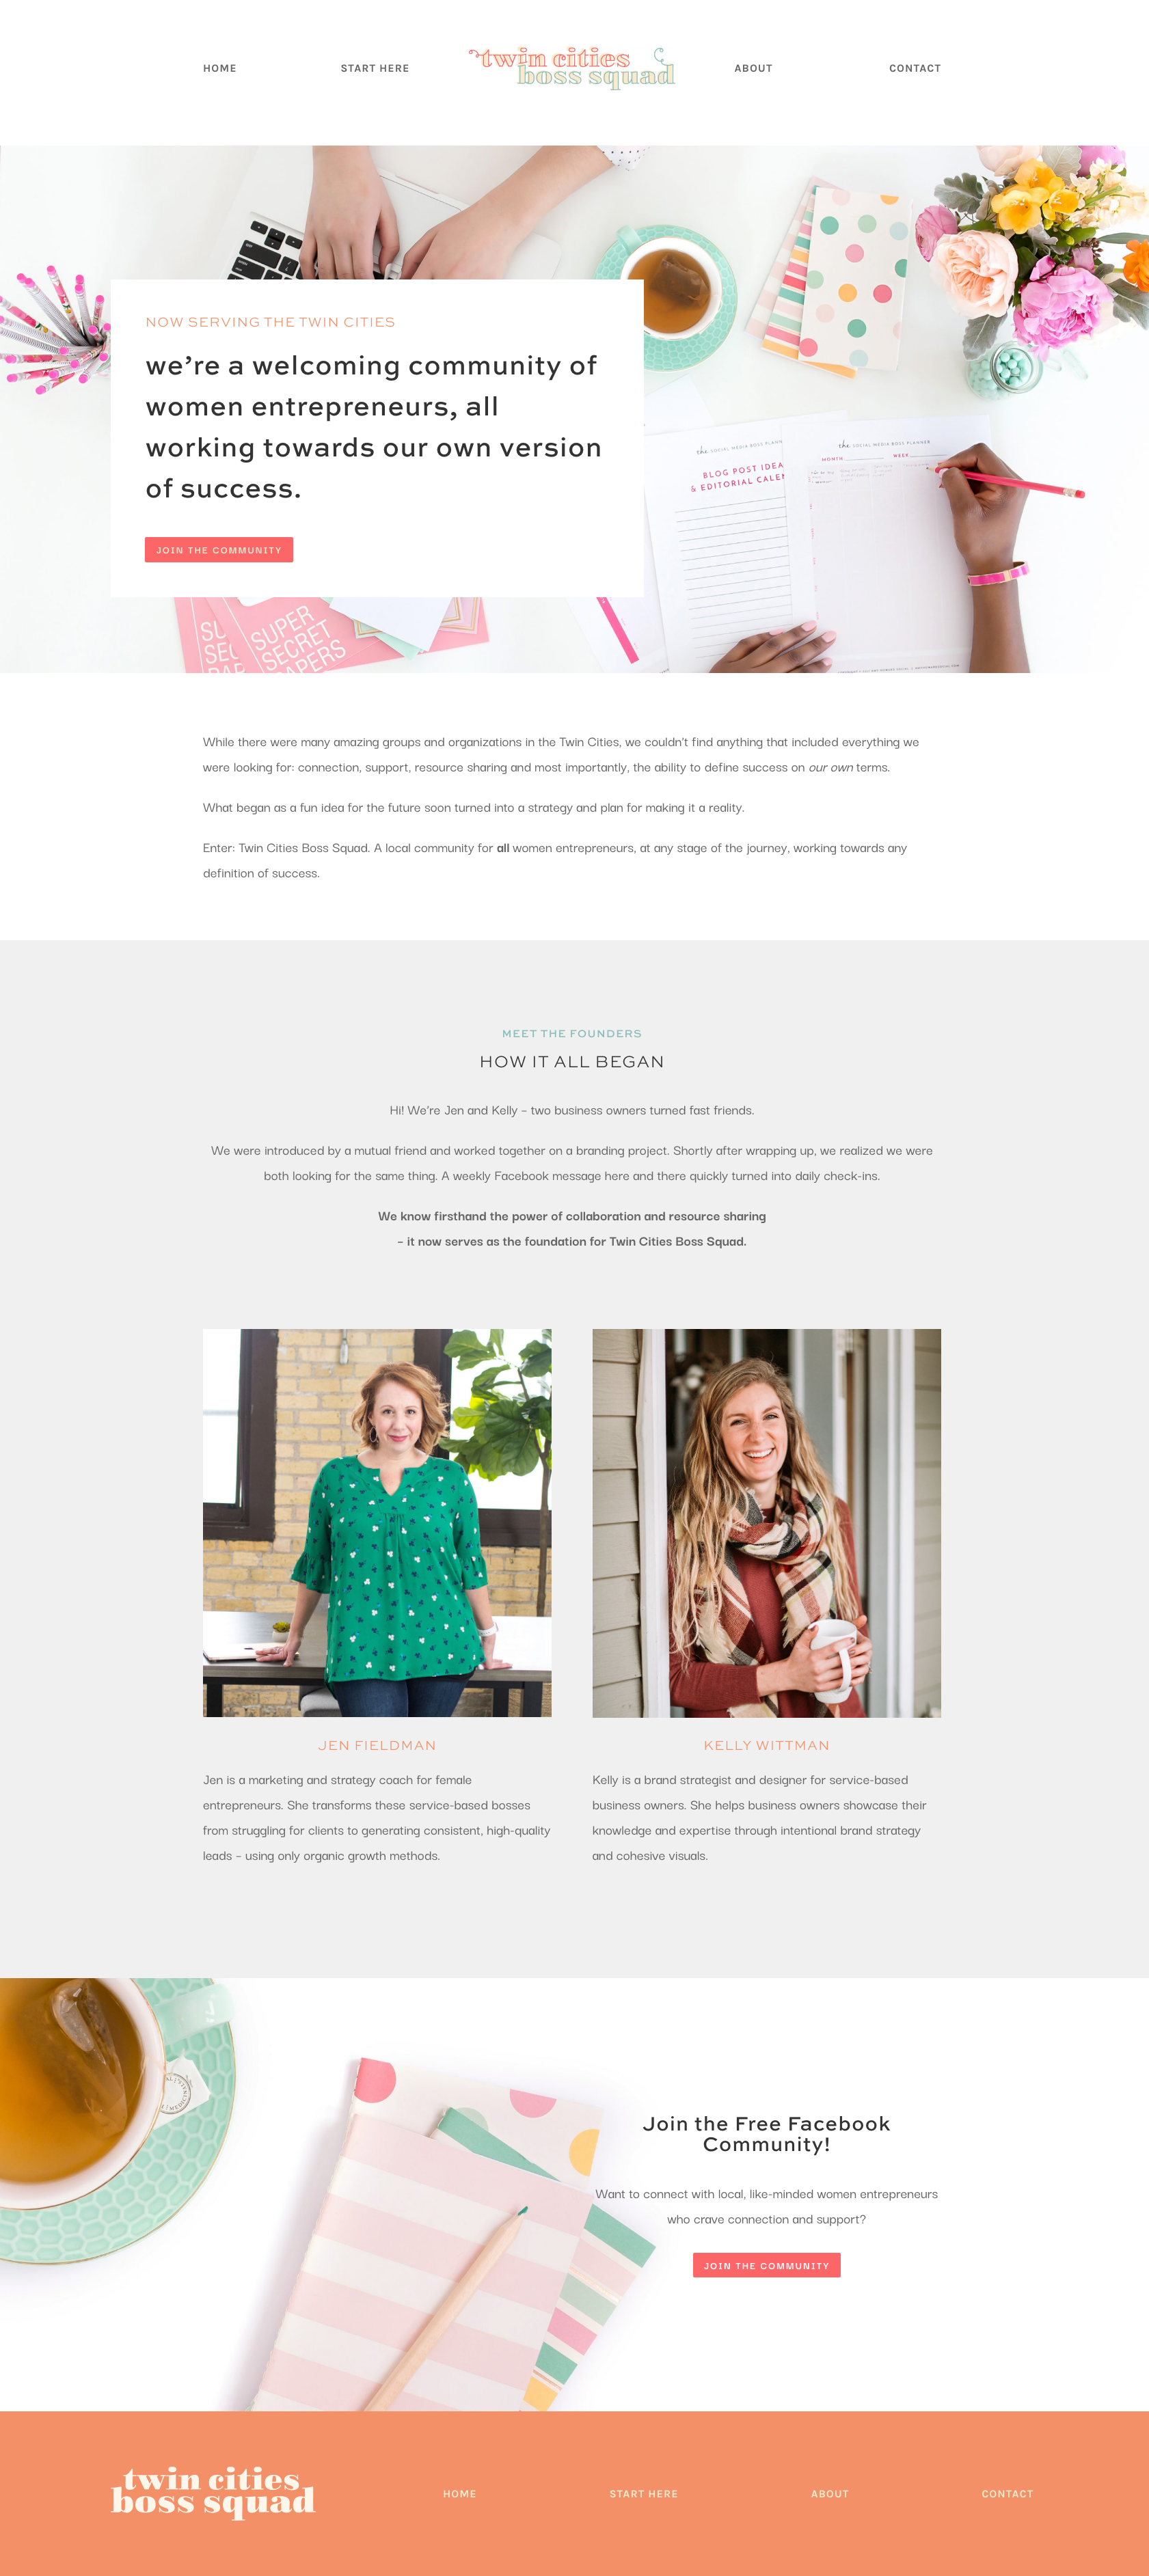 Twin Cities Boss Squad Website Home Page | Witt and Company